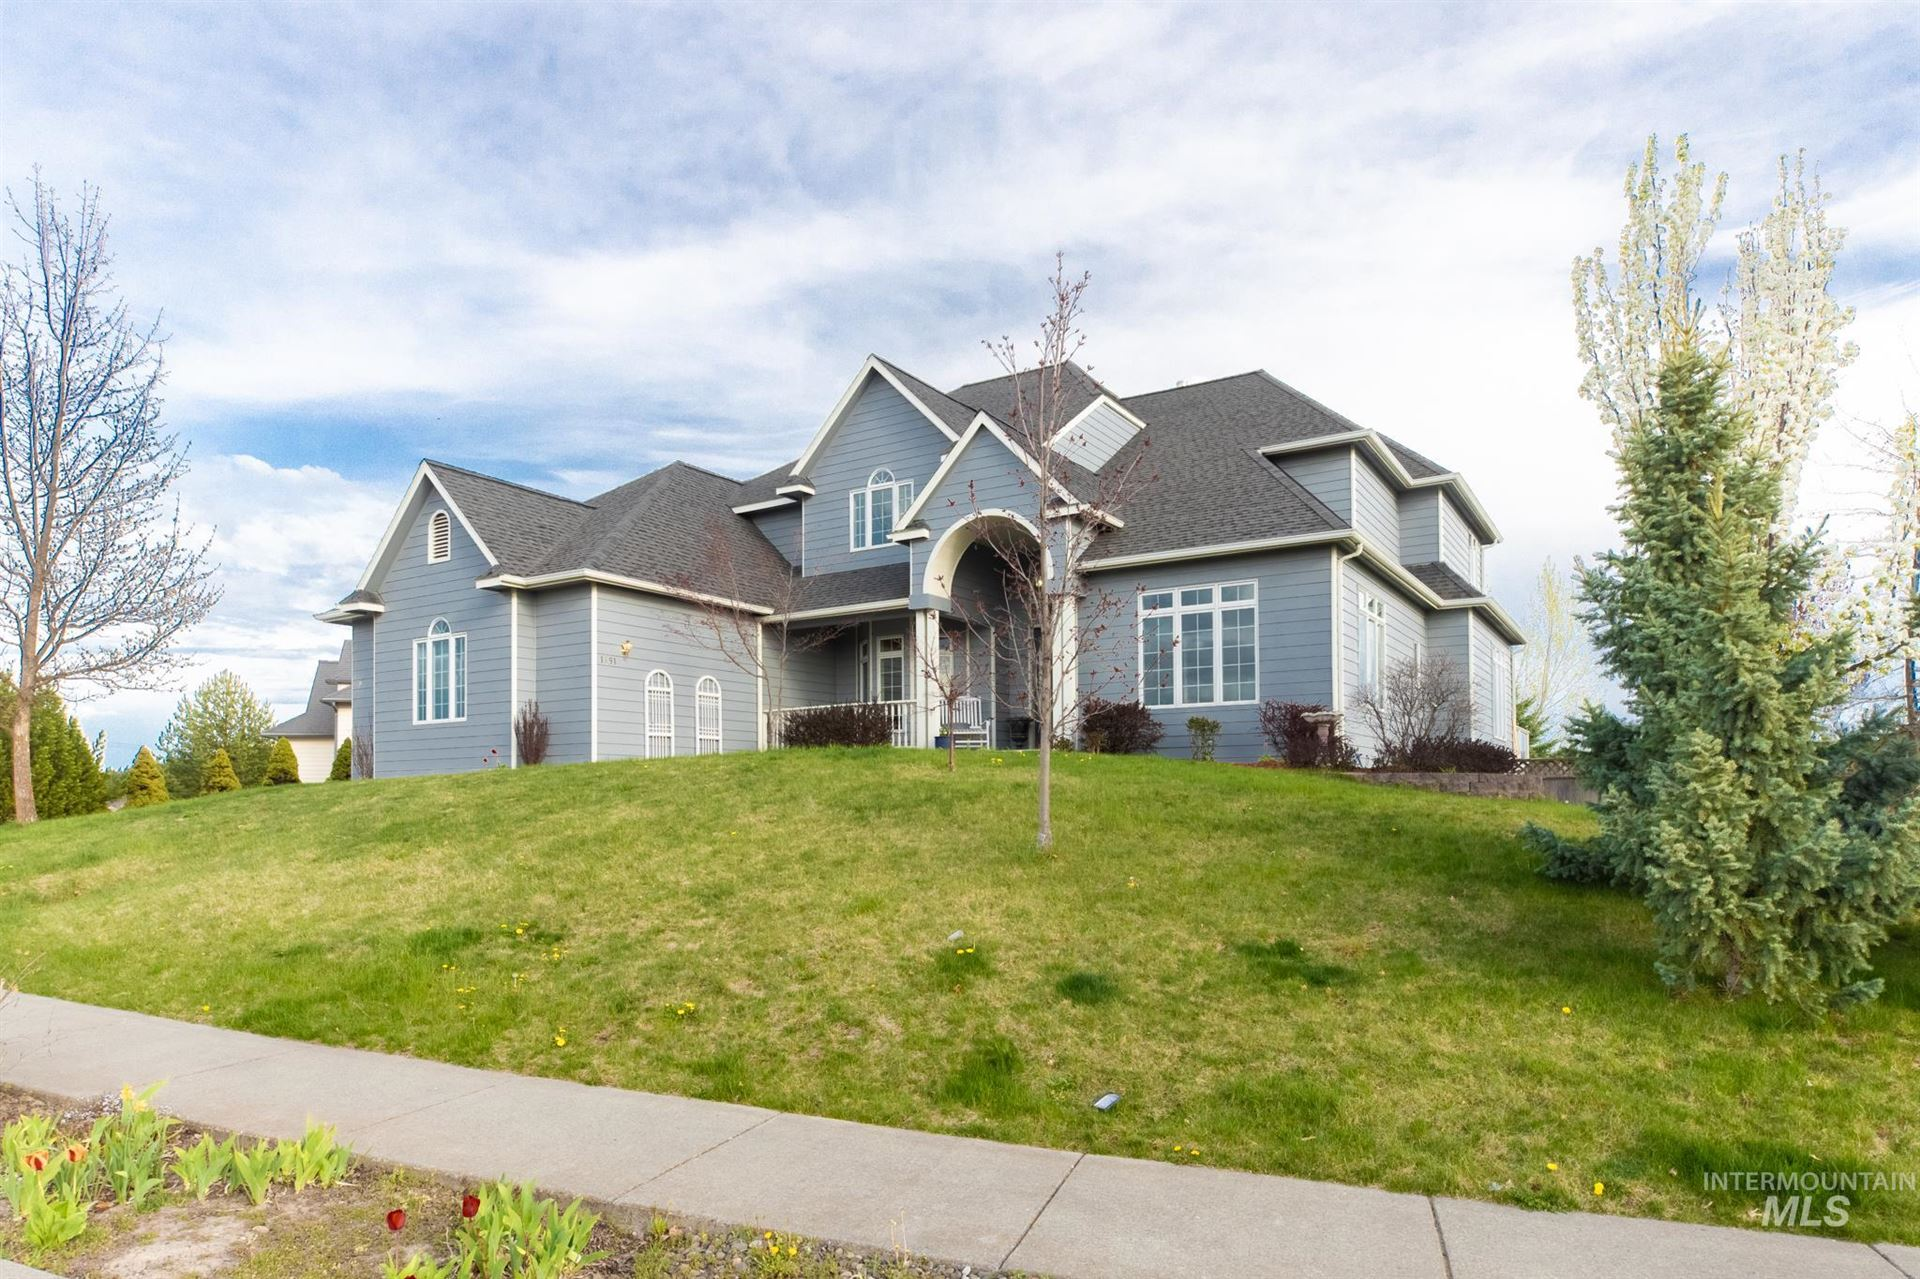 1891 Rolling Hills, Moscow, ID 83843 - MLS#: 98758672